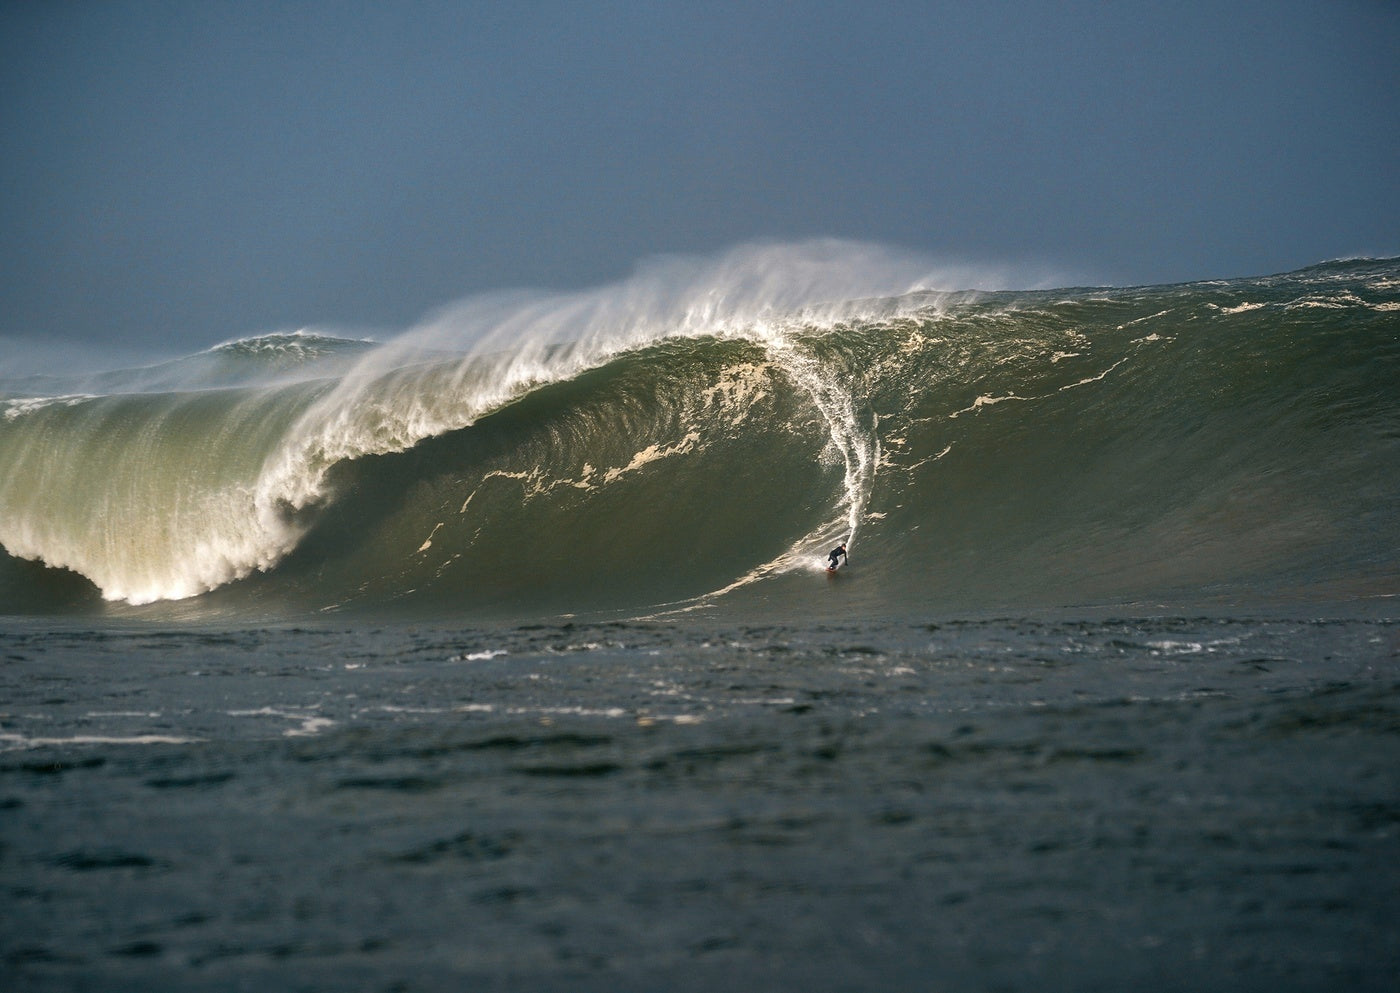 Conor Maguire's record breaking 60ft+ wave at Mullaghmore, captured by Gary McCall